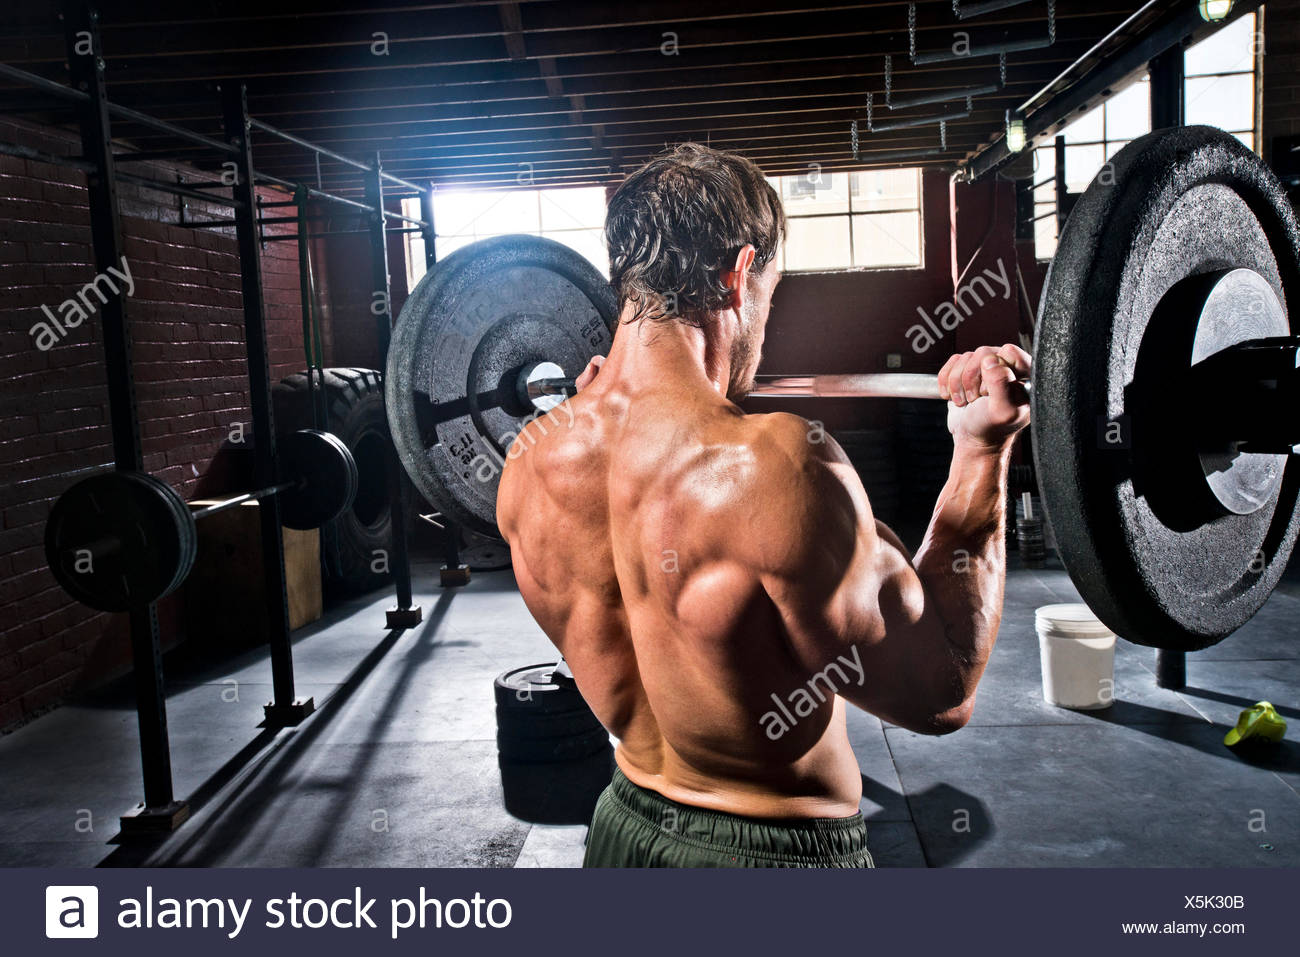 A crossfit athlete performs bicep curls. Stock Photo